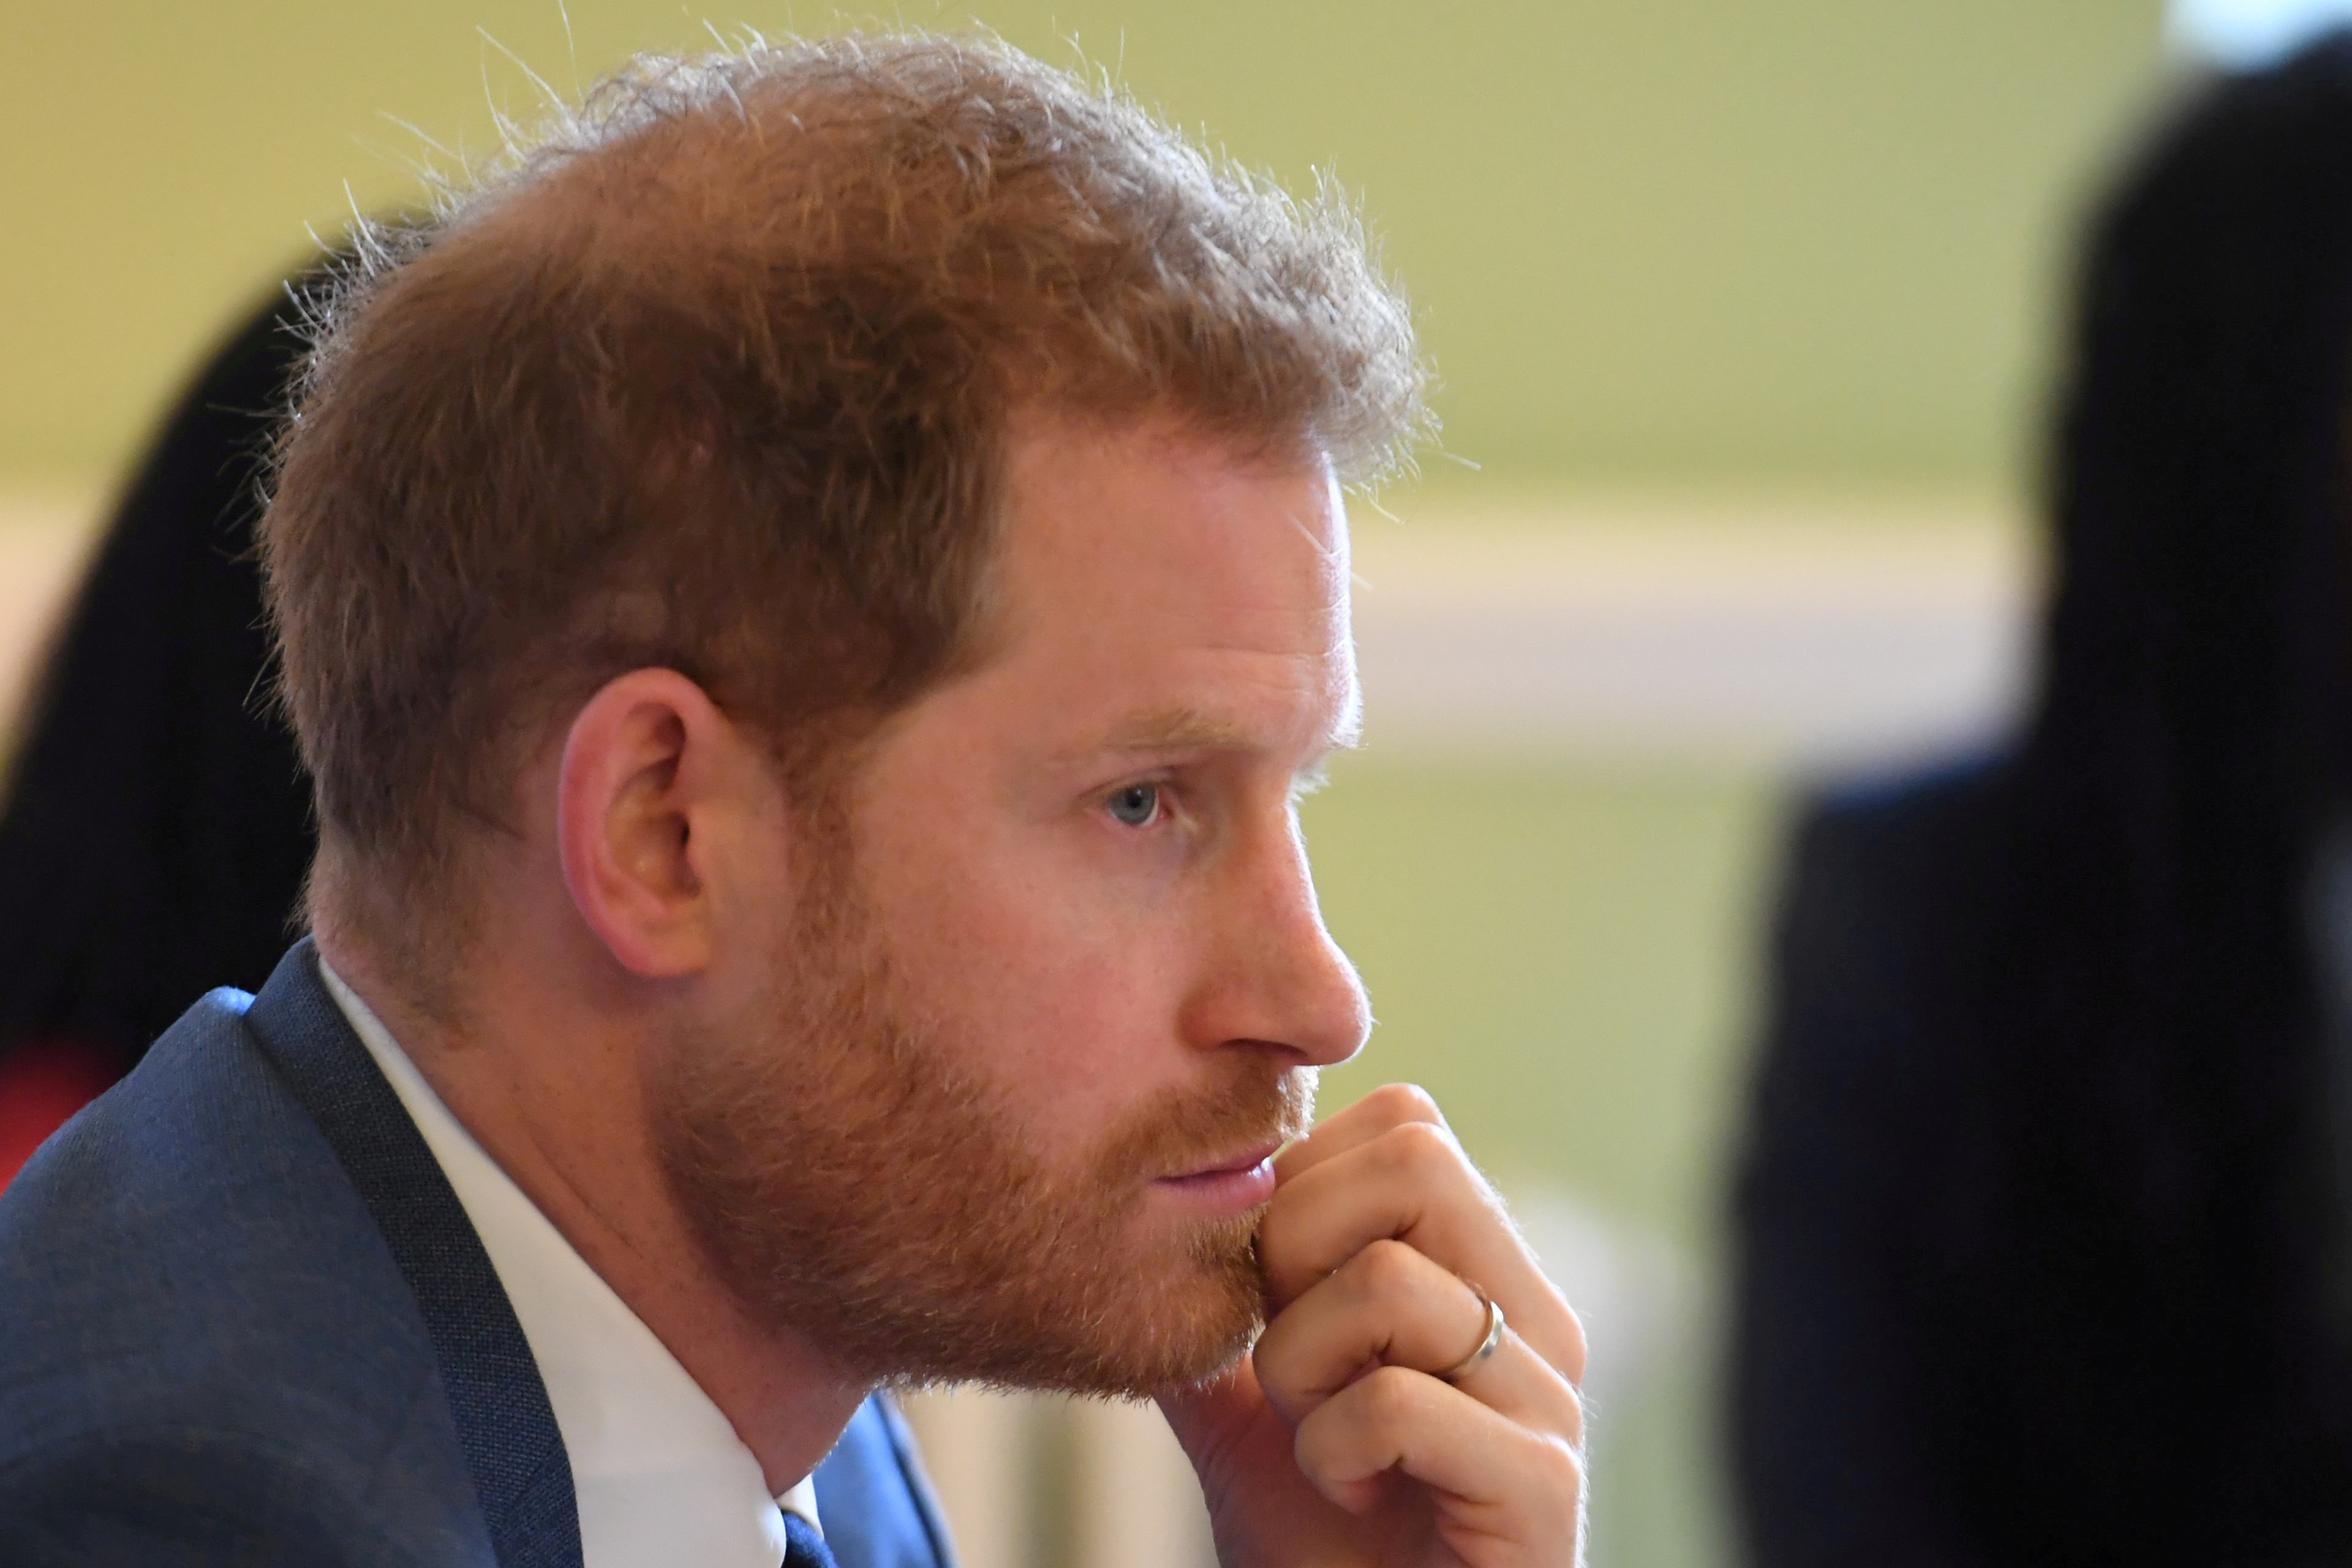 Britain's Prince Harry, Duke of Sussex, attends a roundtable discussion on gender equality with The Queen's Commonwealth Trust (QCT) and One Young World at Windsor Castle, Windsor, Britain October 25, 2019. Jeremy Selwyn/Pool via REUTERS/File Photo